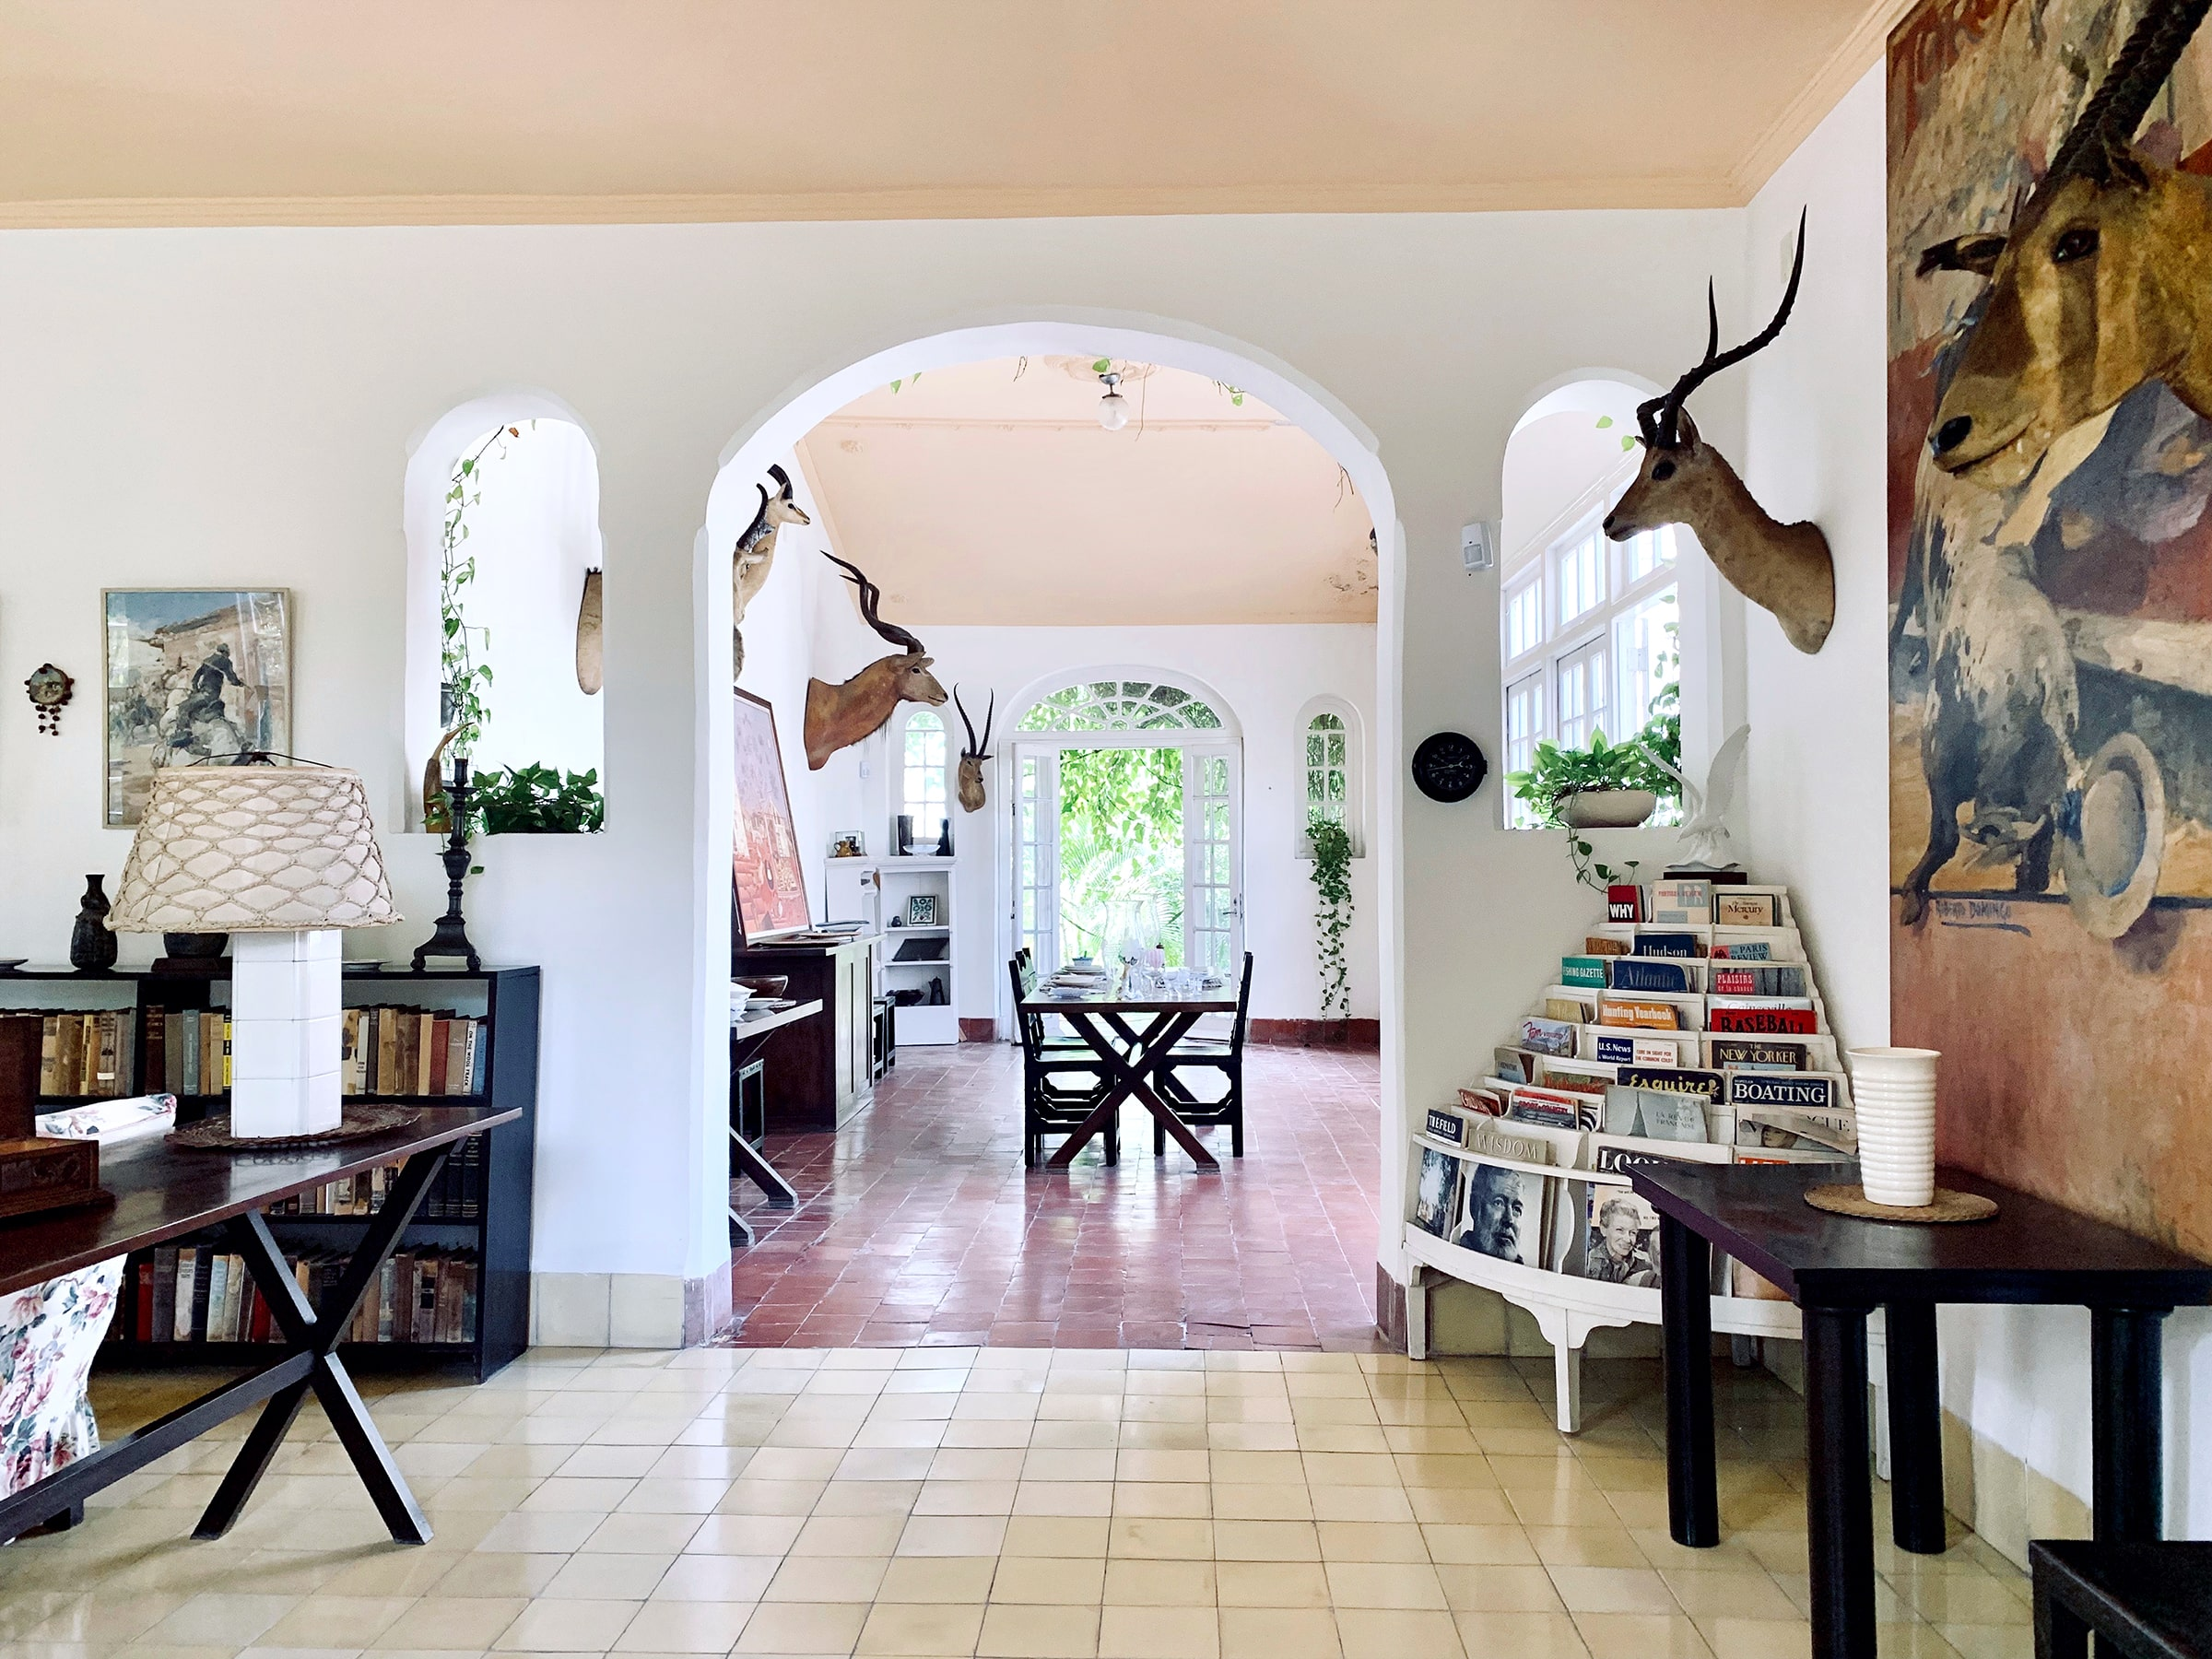 Interior space leading to the dining room of Ernest Hemingway, located right outside of Havana, Cuba